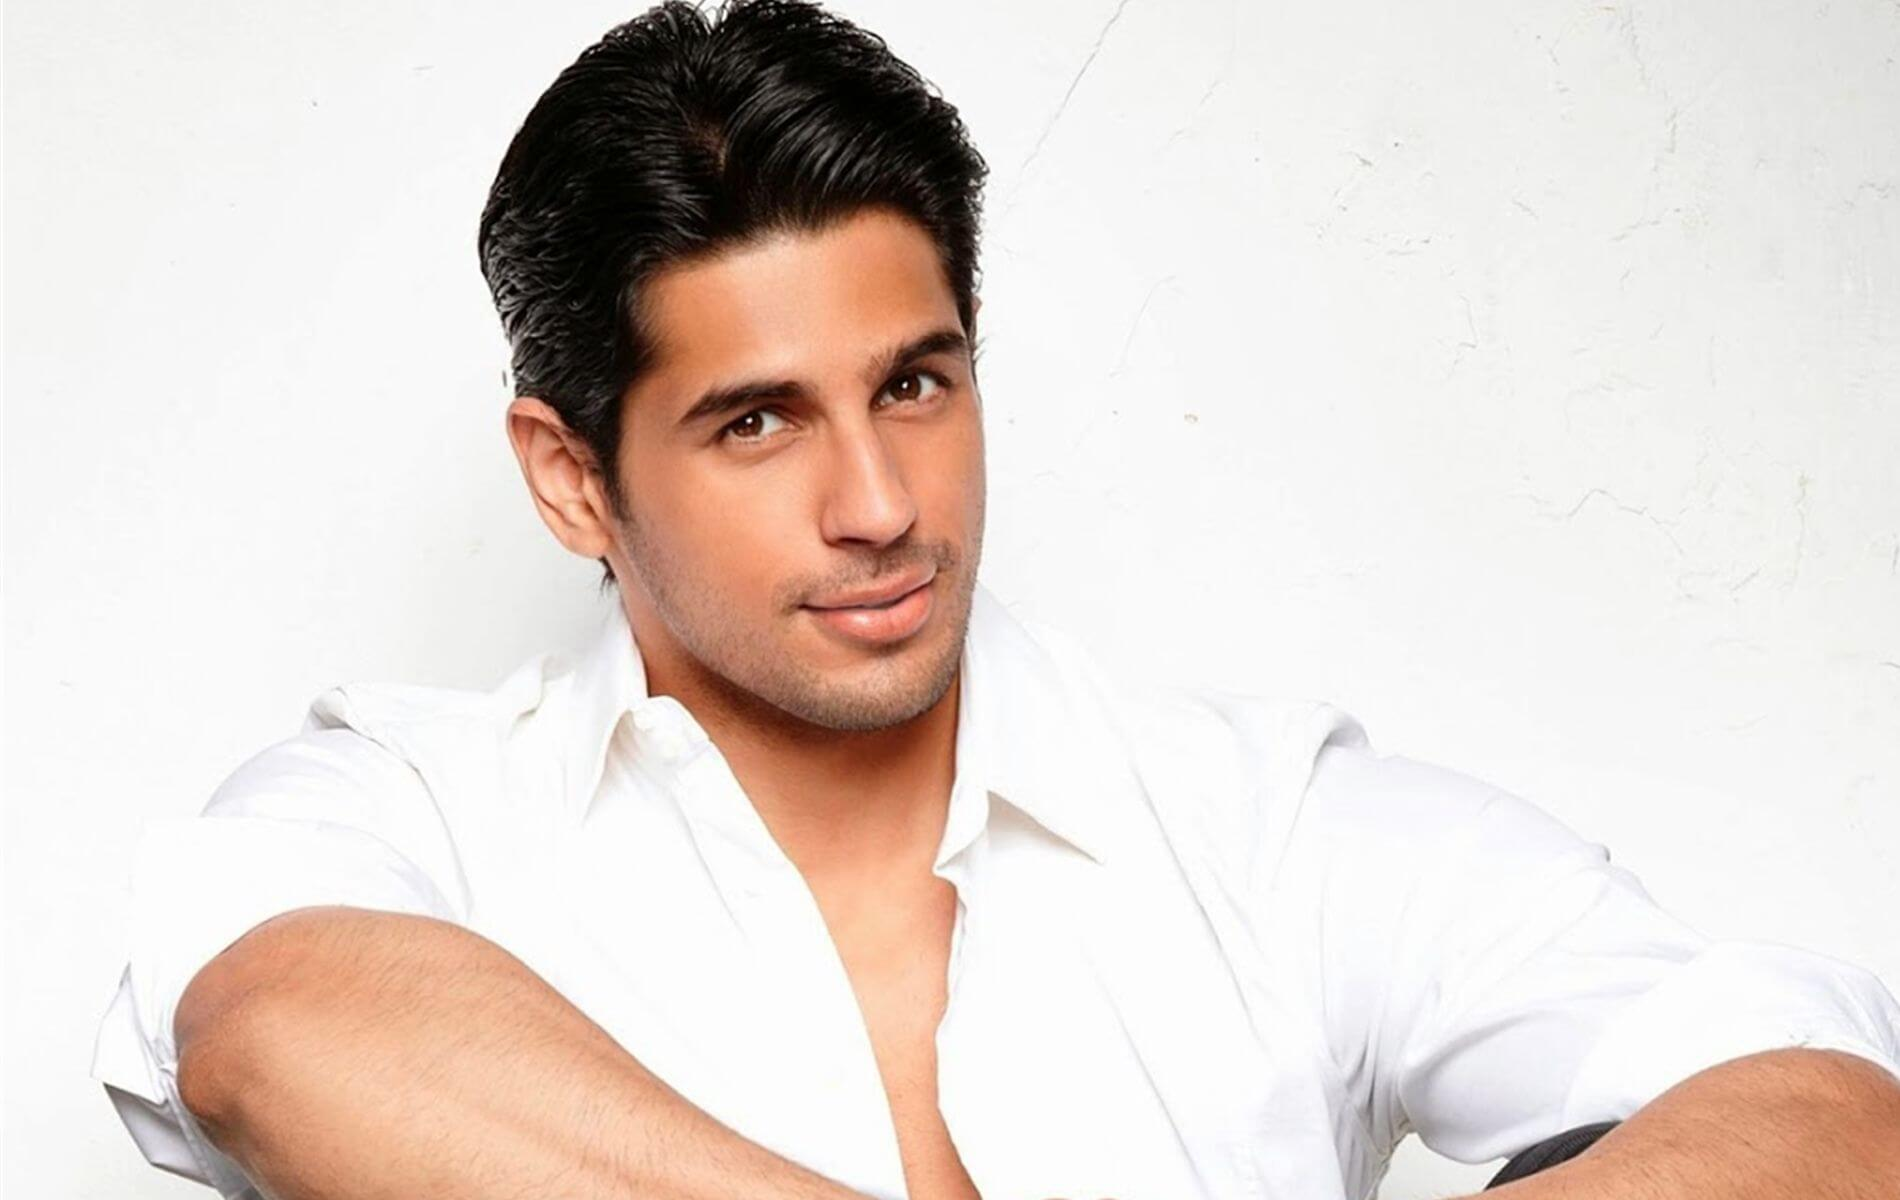 Sidharth Malhotra Movies, Height, Age, Photos, Birth Date, Biography, Girlfriend, Family, Hairstyle, Education, Details, Net Worth, Awards, Wiki, Instagram, Facebook, Imdb, Twitter (46)